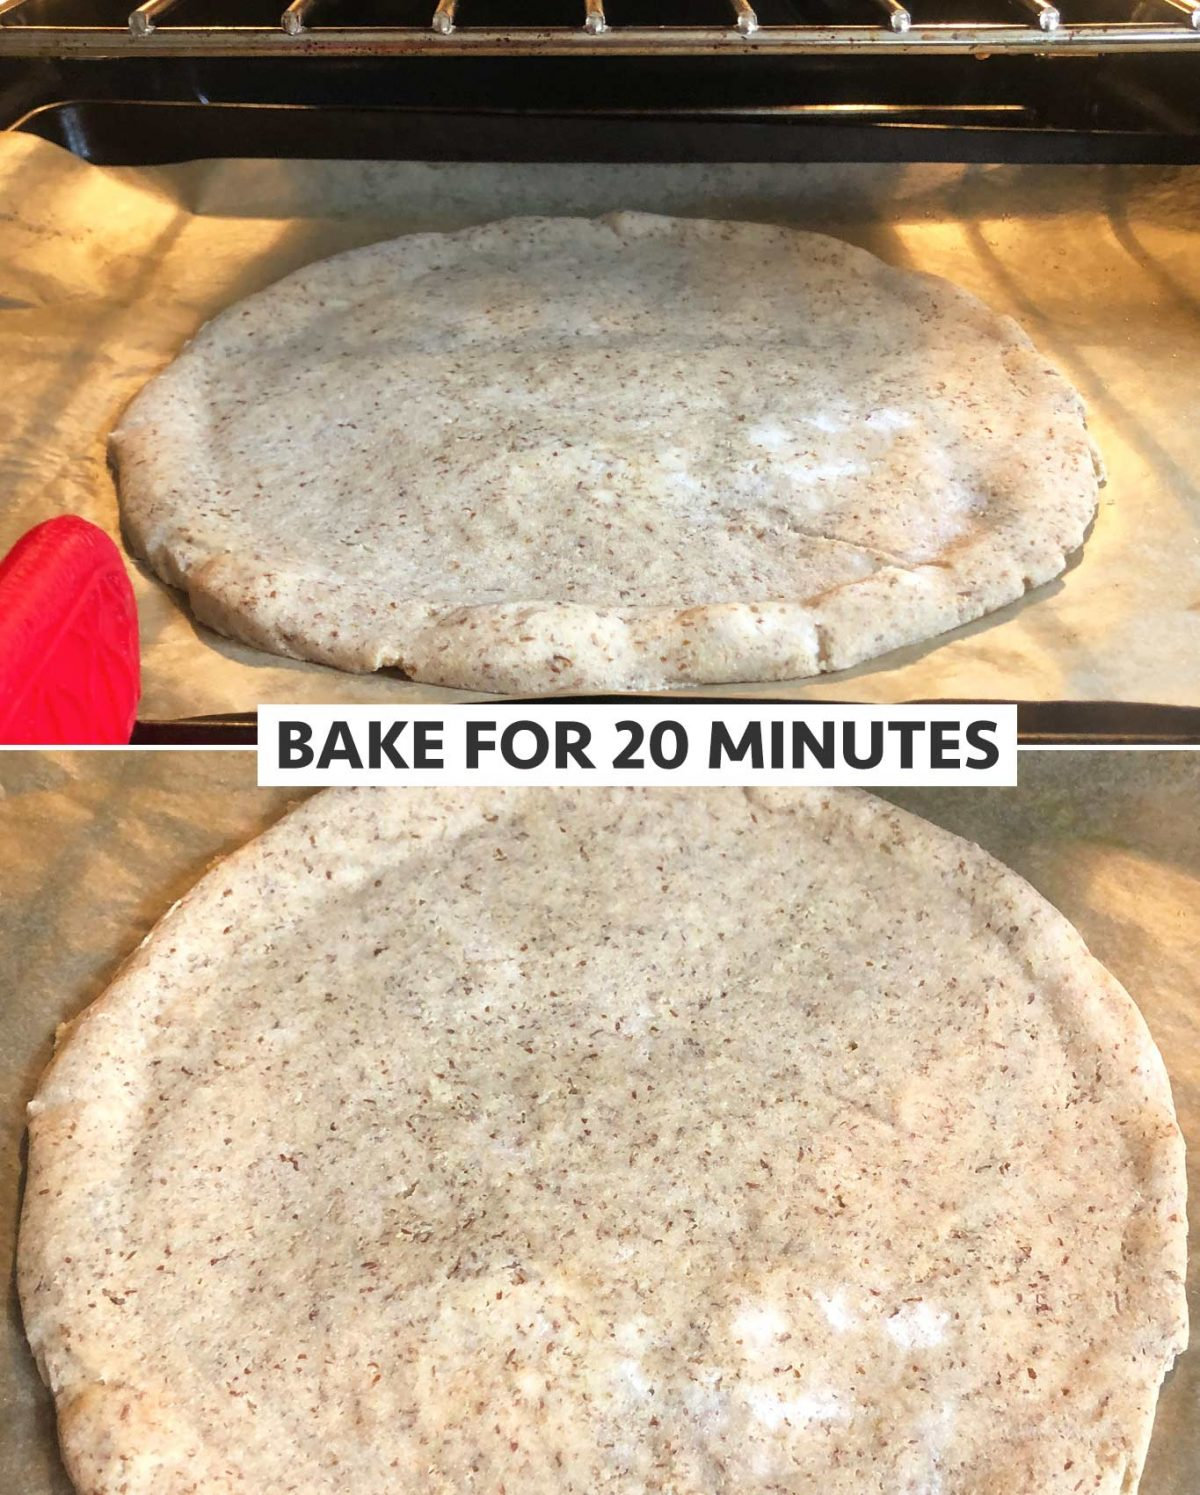 Bake the grain-free crust for 20 minutes before adding your toppings.